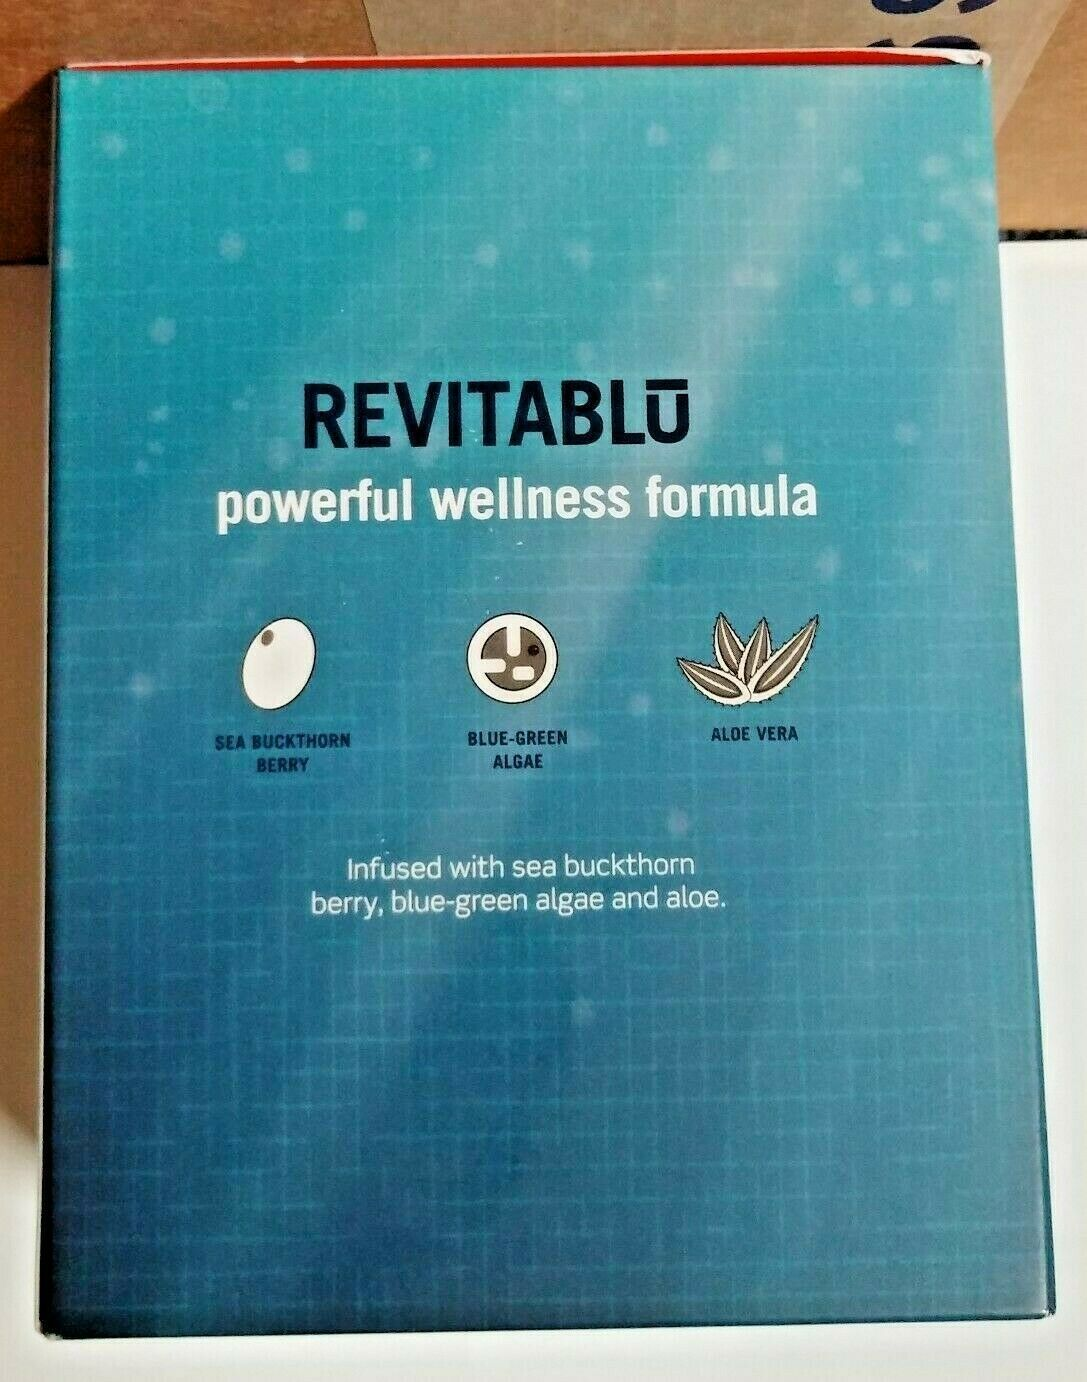 Primary image for Jeunesse RevitaBlu Powerful wellness formula REVITA BLU - Immune Support Ex03/22